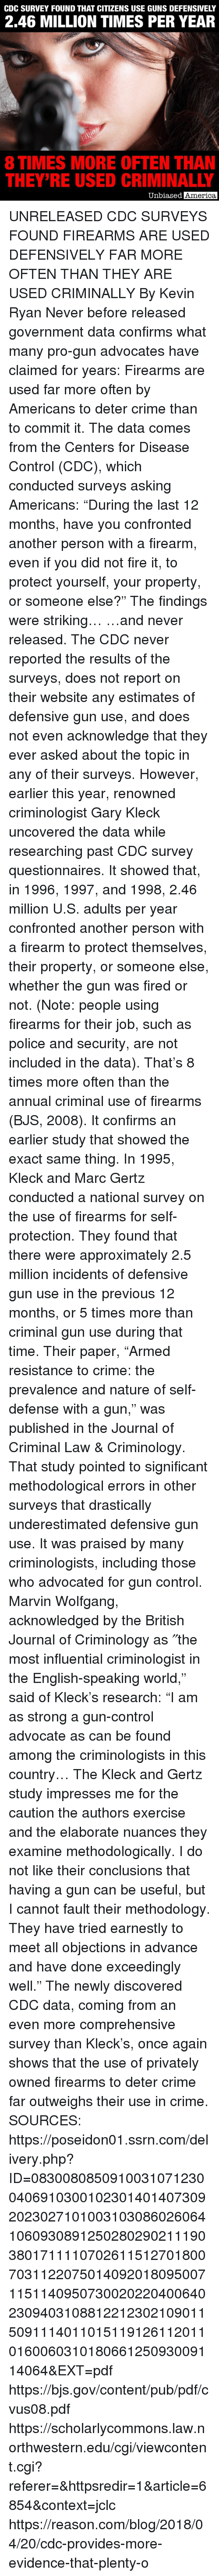 """America, Crime, and Fire: CDC SURVEY FOUND THAT CITIZENS USE GUNS DEFENSIVELY  2.46 MILLION TIMES PER YEAR  8 TIMES MORE OFTEN THAN  THEY'RE USED CRIMINALLY  Unbiased  America UNRELEASED CDC SURVEYS FOUND FIREARMS ARE USED DEFENSIVELY FAR MORE OFTEN THAN THEY ARE USED CRIMINALLY By Kevin Ryan  Never before released government data confirms what many pro-gun advocates have claimed for years: Firearms are used far more often by Americans to deter crime than to commit it.  The data comes from the Centers for Disease Control (CDC), which conducted surveys asking Americans: """"During the last 12 months, have you confronted another person with a firearm, even if you did not fire it, to protect yourself, your property, or someone else?""""  The findings were striking…  …and never released.  The CDC never reported the results of the surveys, does not report on their website any estimates of defensive gun use, and does not even acknowledge that they ever asked about the topic in any of their surveys.  However, earlier this year, renowned criminologist Gary Kleck uncovered the data while researching past CDC survey questionnaires.  It showed that, in 1996, 1997, and 1998, 2.46 million U.S. adults per year confronted another person with a firearm to protect themselves, their property, or someone else, whether the gun was fired or not. (Note: people using firearms for their job, such as police and security, are not included in the data).  That's 8 times more often than the annual criminal use of firearms (BJS, 2008).  It confirms an earlier study that showed the exact same thing.  In 1995, Kleck and Marc Gertz conducted a national survey on the use of firearms for self-protection.  They found that there were approximately 2.5 million incidents of defensive gun use in the previous 12 months, or 5 times more than criminal gun use during that time.  Their paper, """"Armed resistance to crime: the prevalence and nature of self-defense with a gun,"""" was published in the Journal of Criminal L"""